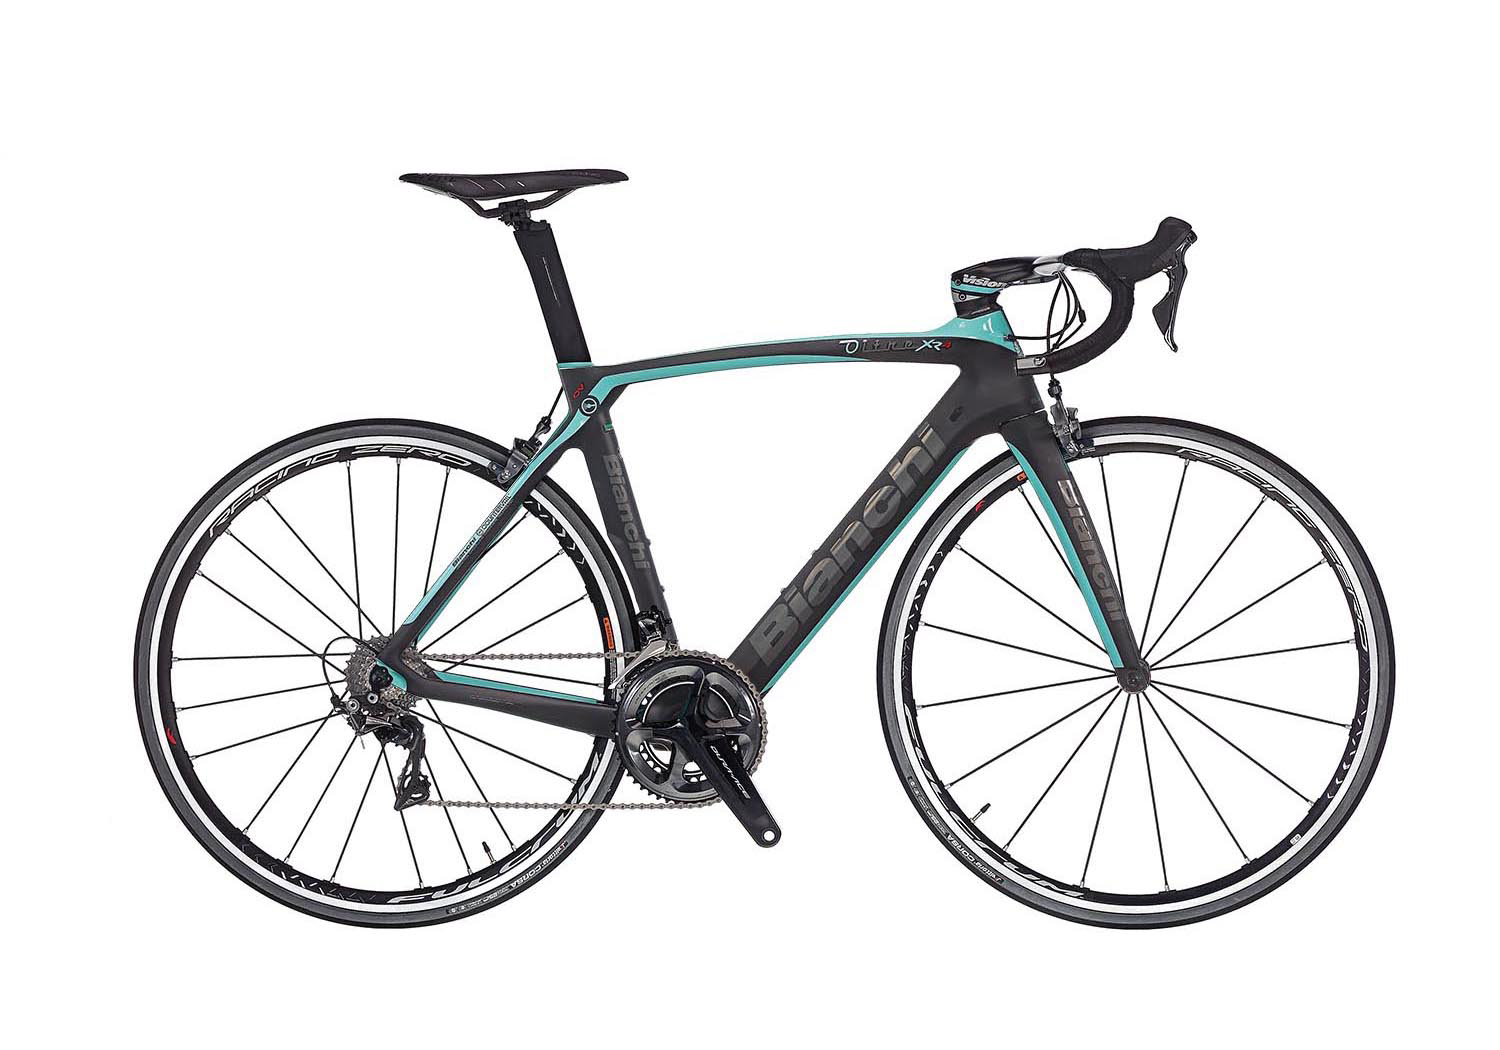 Bianchi Oltre XR4 Dura Ace (2017)